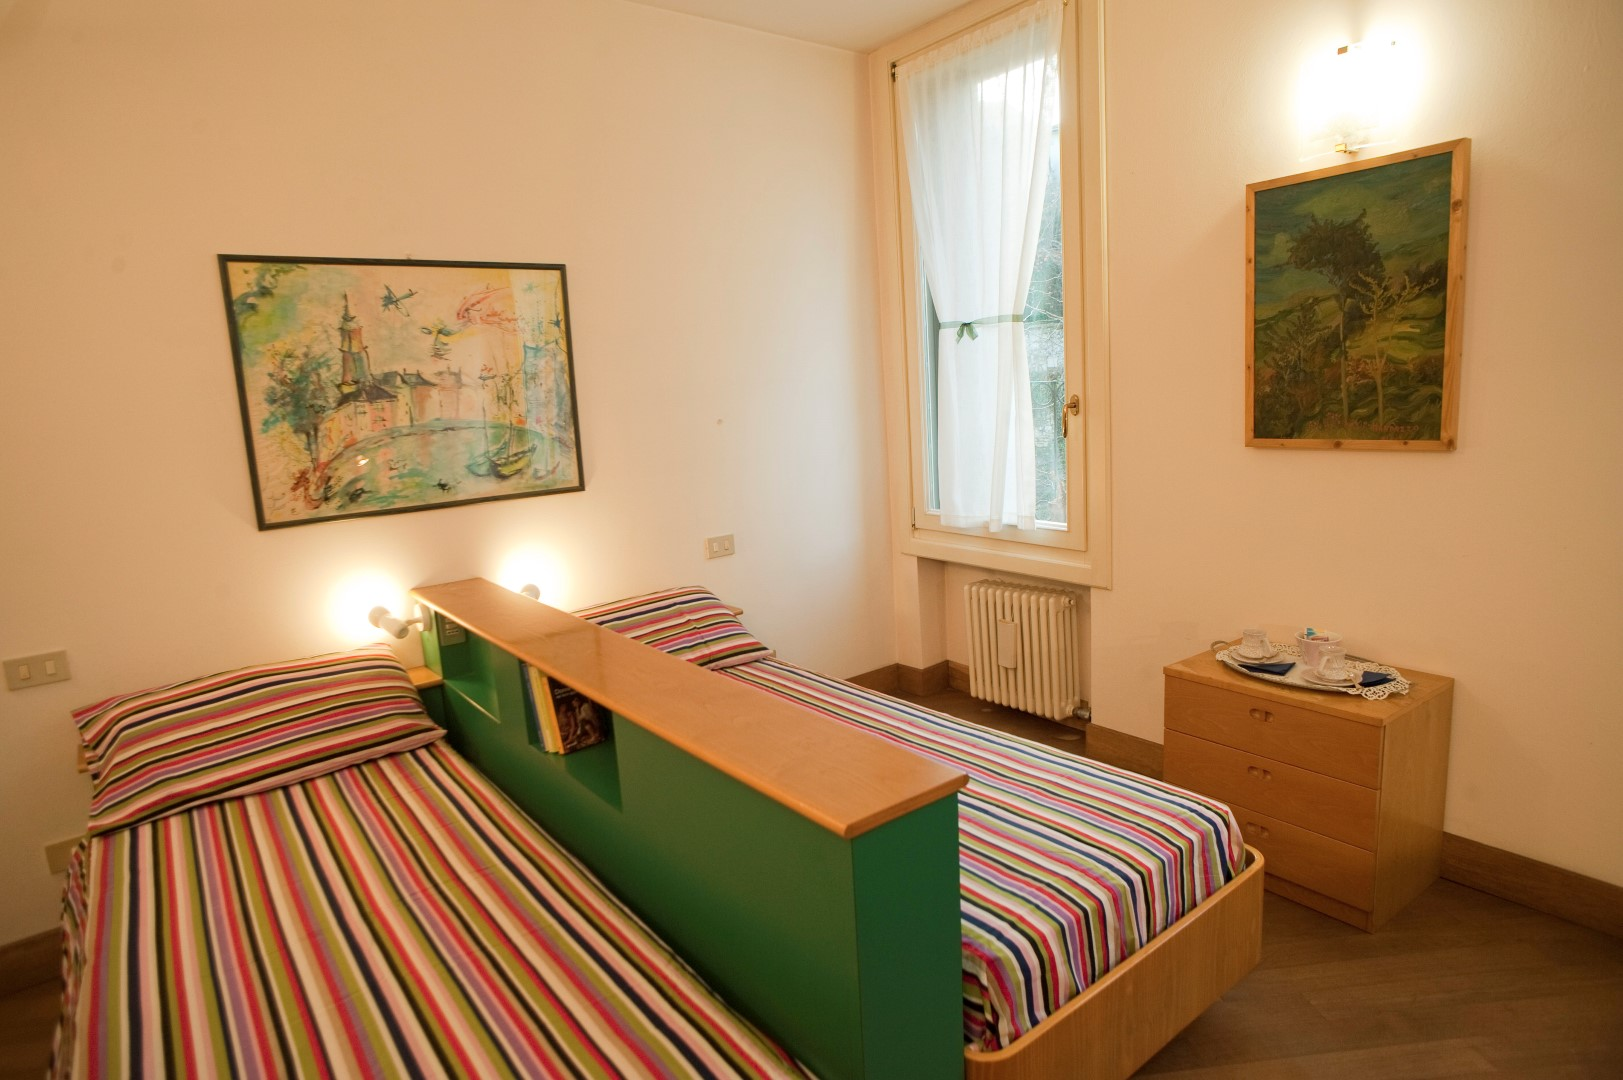 B&b al ponte Vicenza Camera doppia 1491